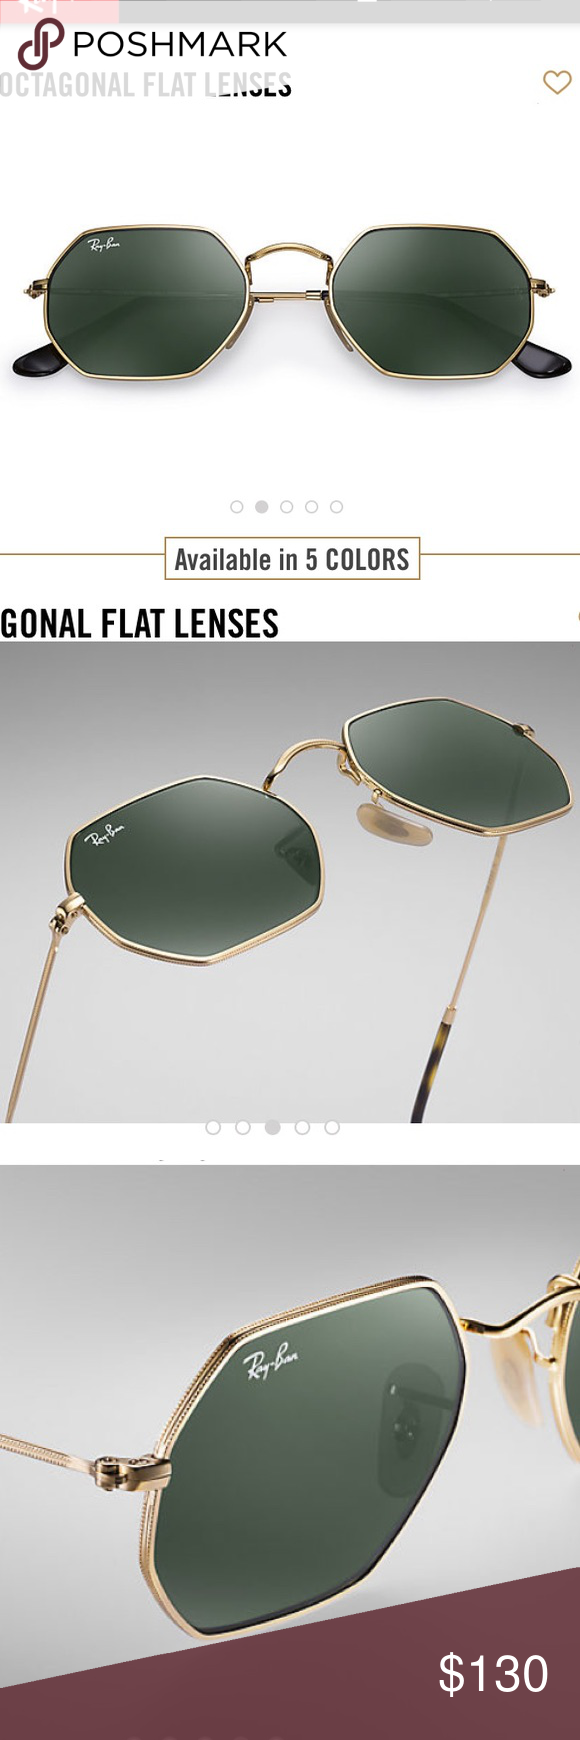 Ray-ban   octagonal flat lens sunglasses PRODUCT DETAILS Model code  RB3556N  001 53 291833ab0b